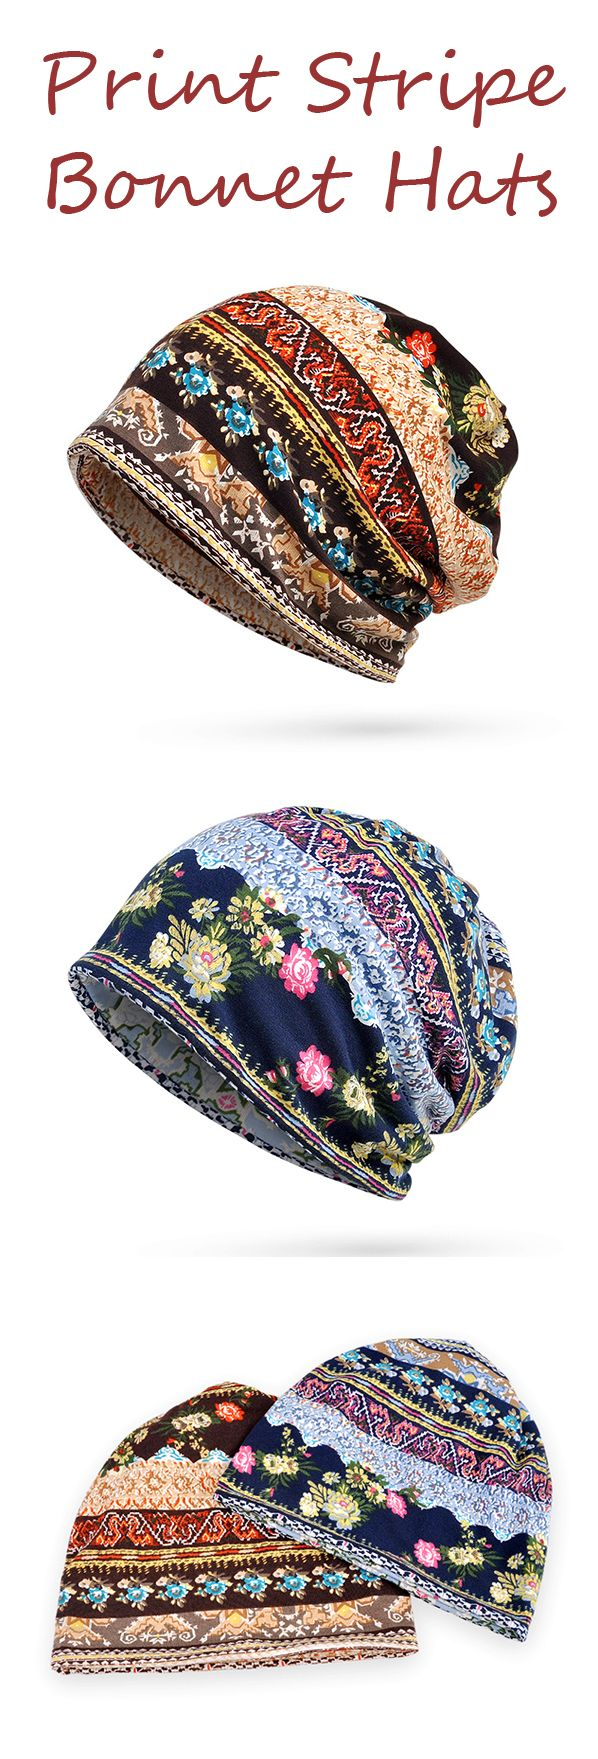 US$ 6.80 Women Cotton Print Stripe Bonnet Hats Casual Outdoor Sun Cap Multi-function Towel